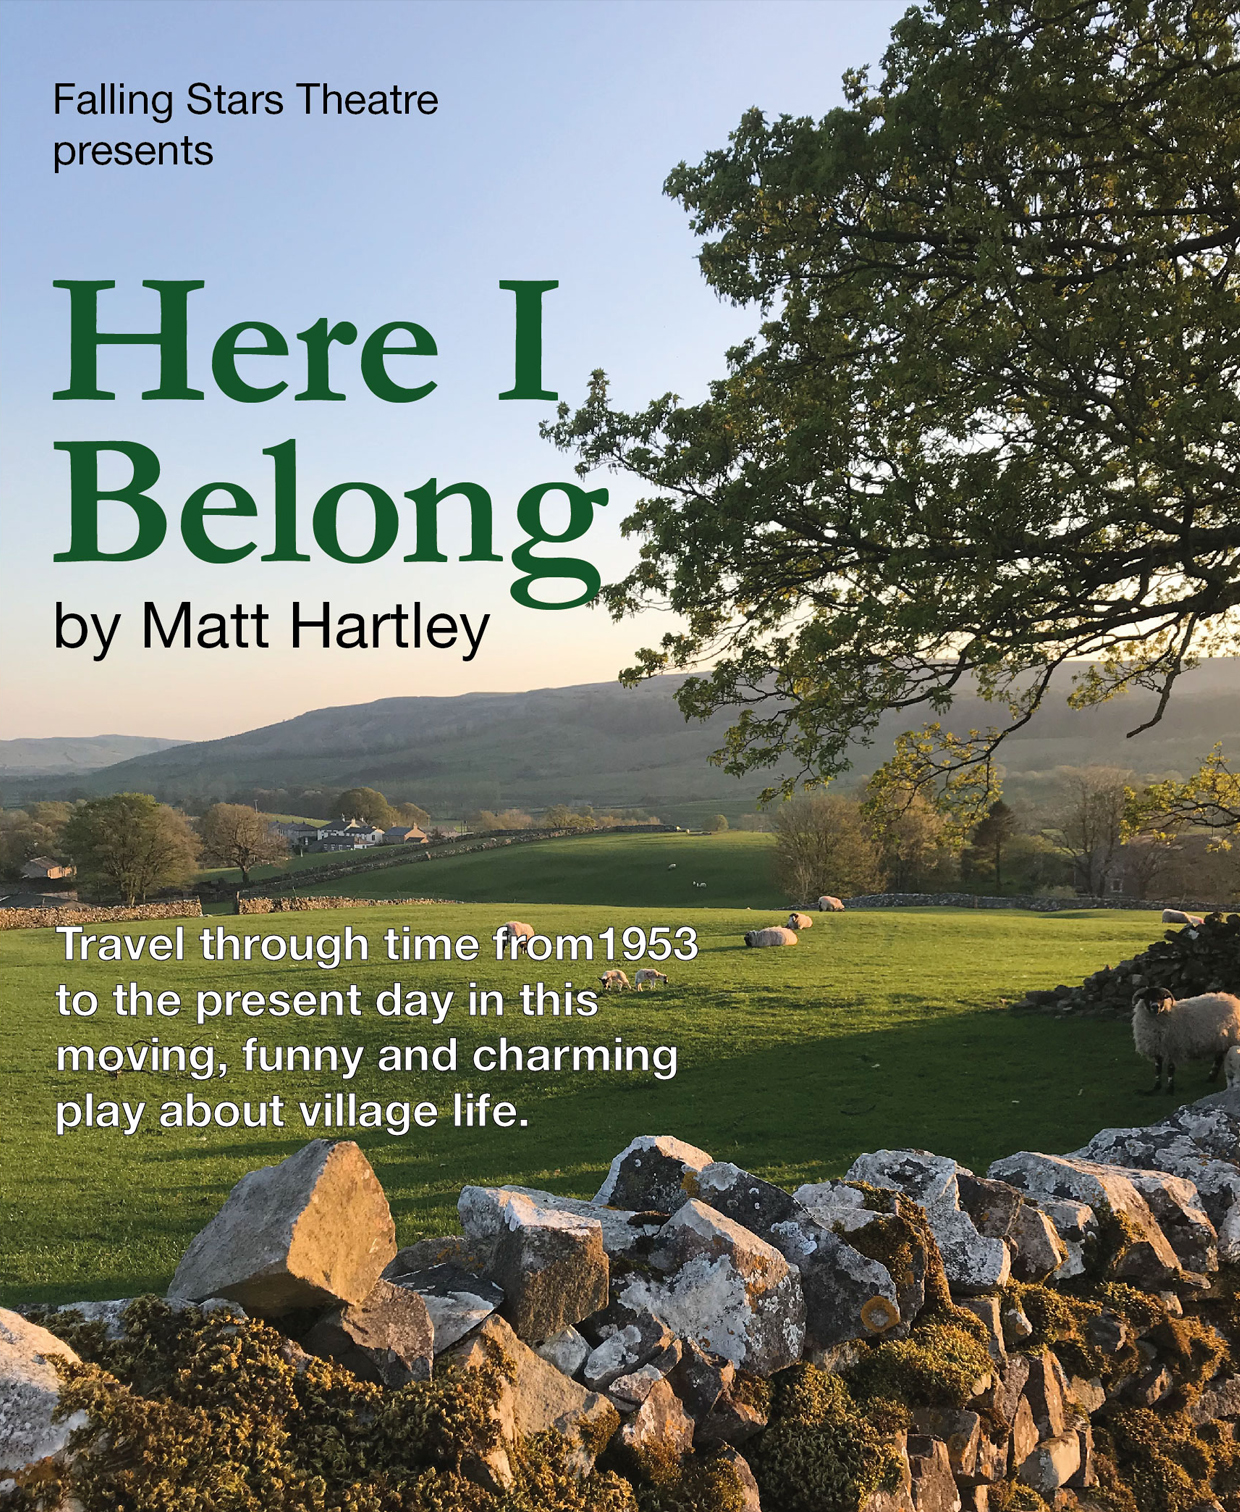 Here belong i by Falling Stars Theatre